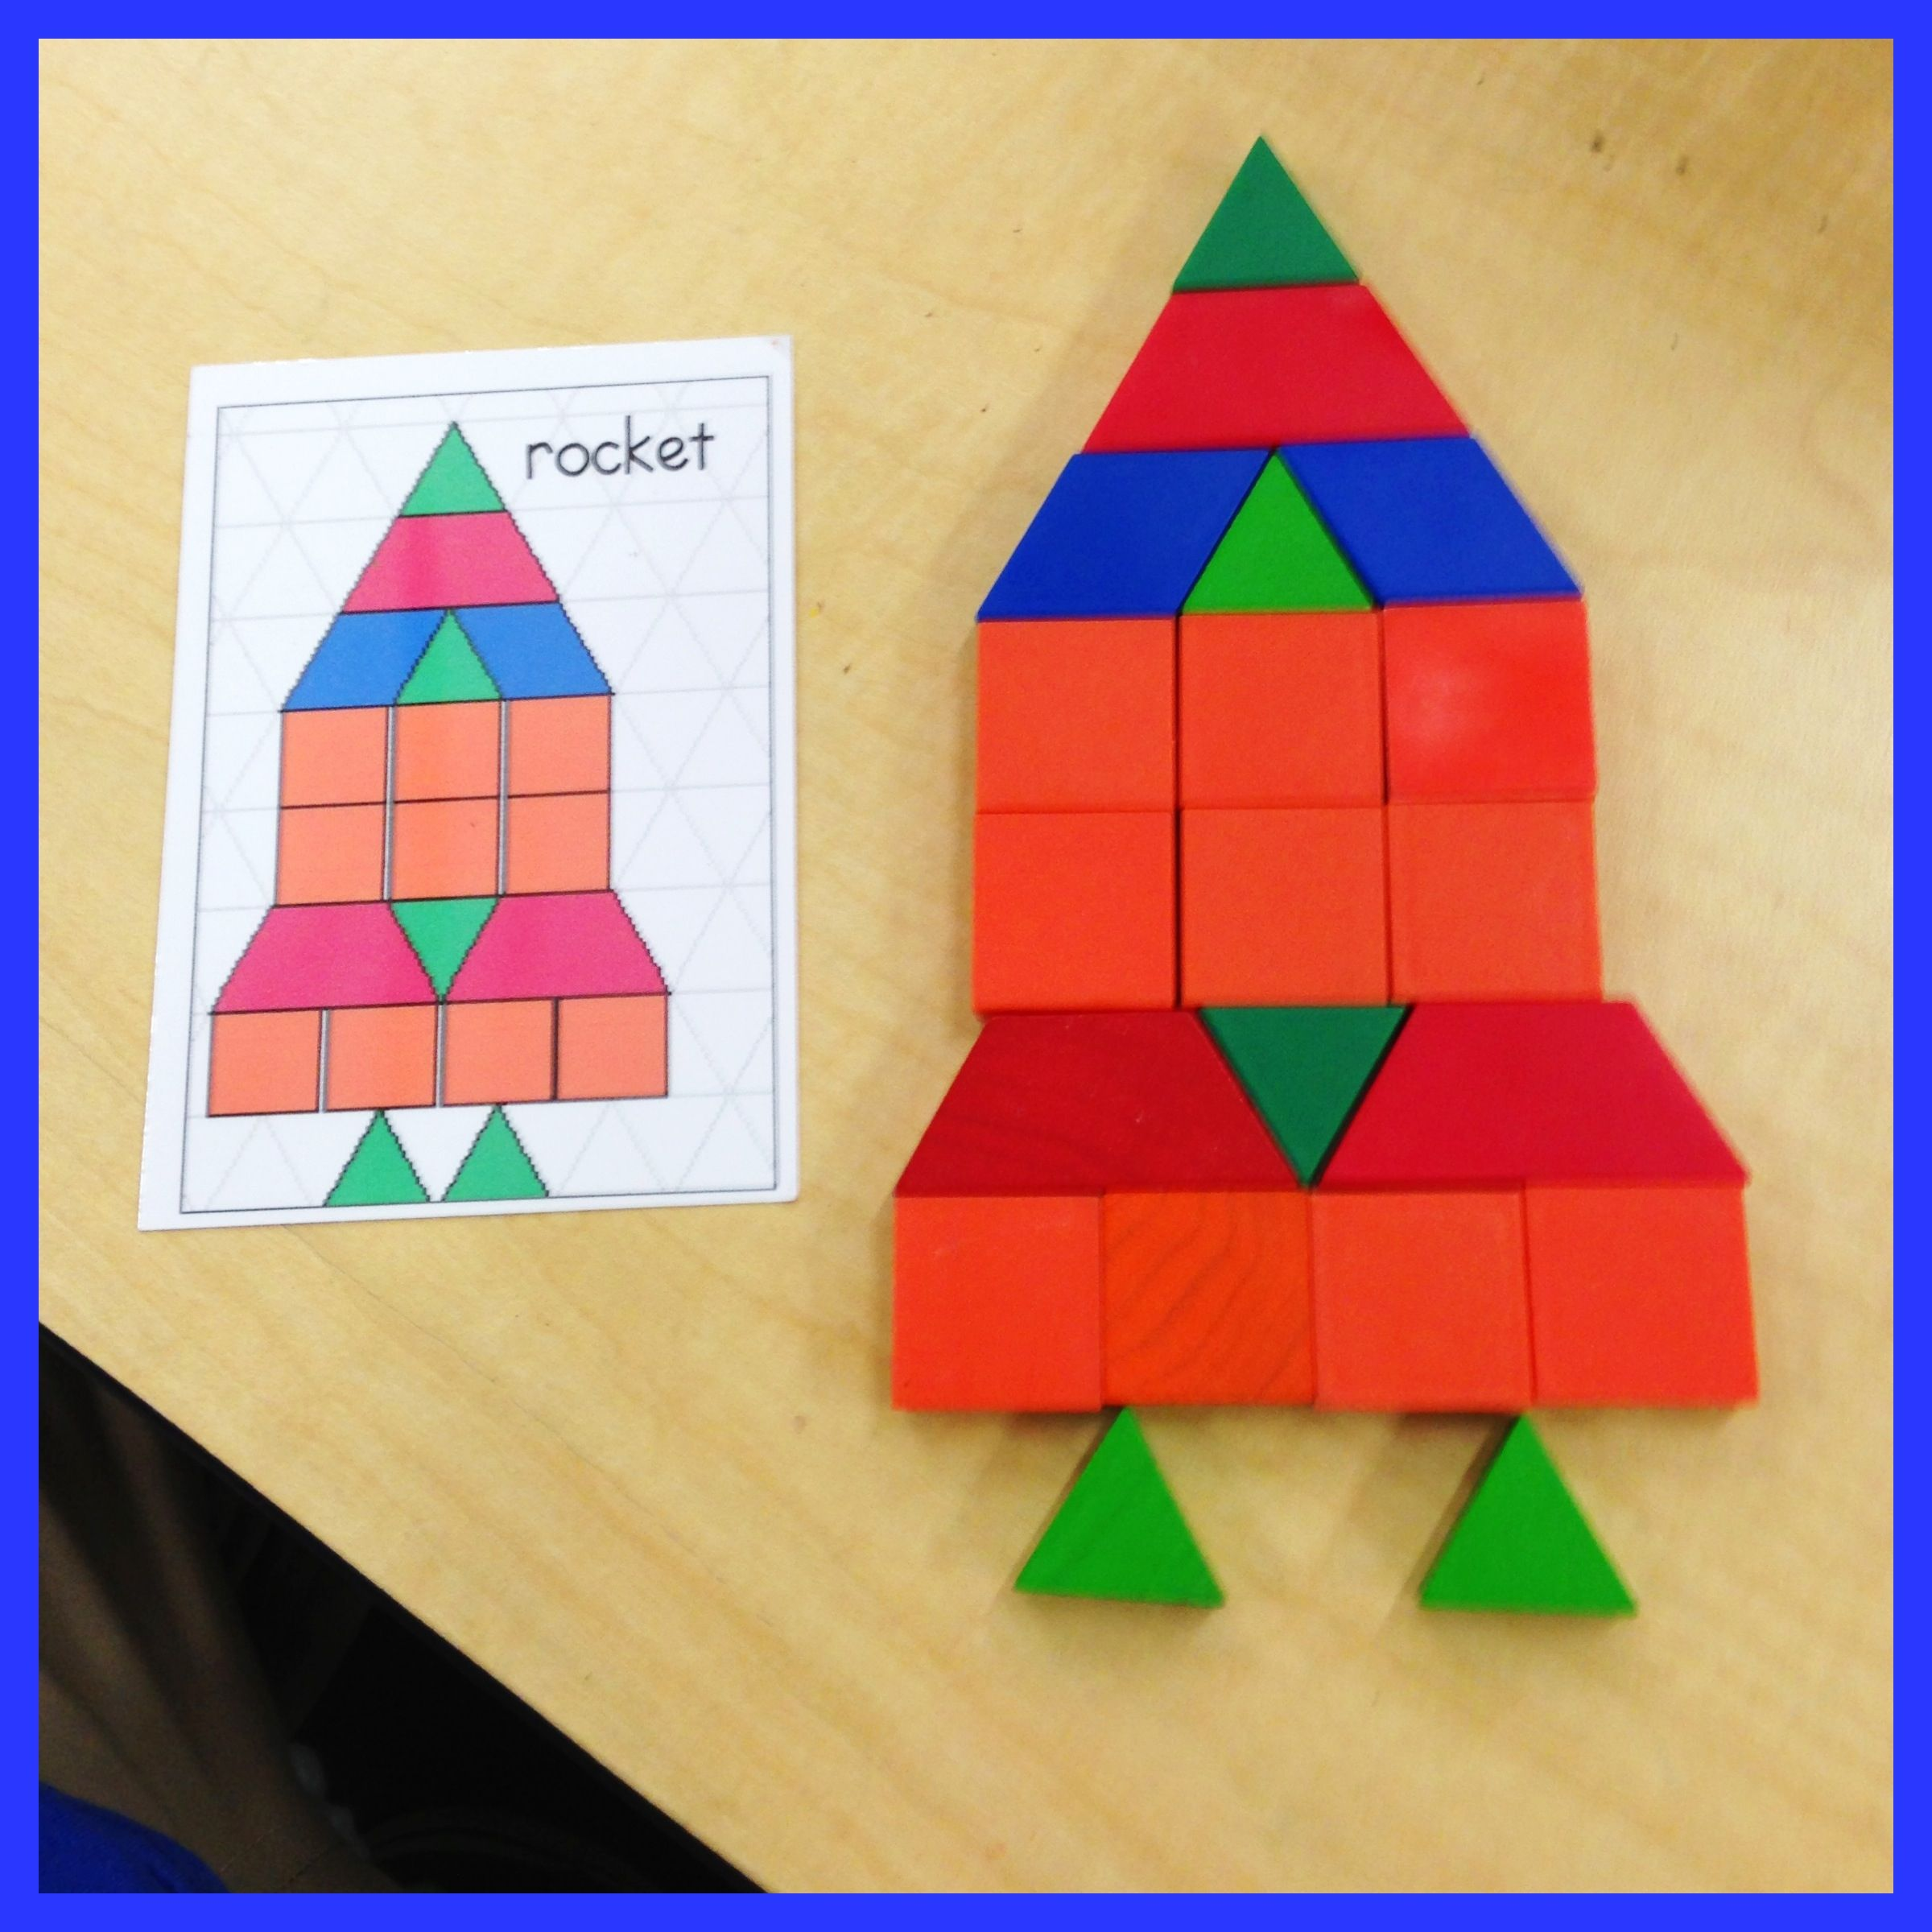 Construct Using Basic Shapes Spatial Reasoning To Model Objects In The Environment Spatial Concepts Early Learning Math Reasoning Activities [ 2400 x 2400 Pixel ]